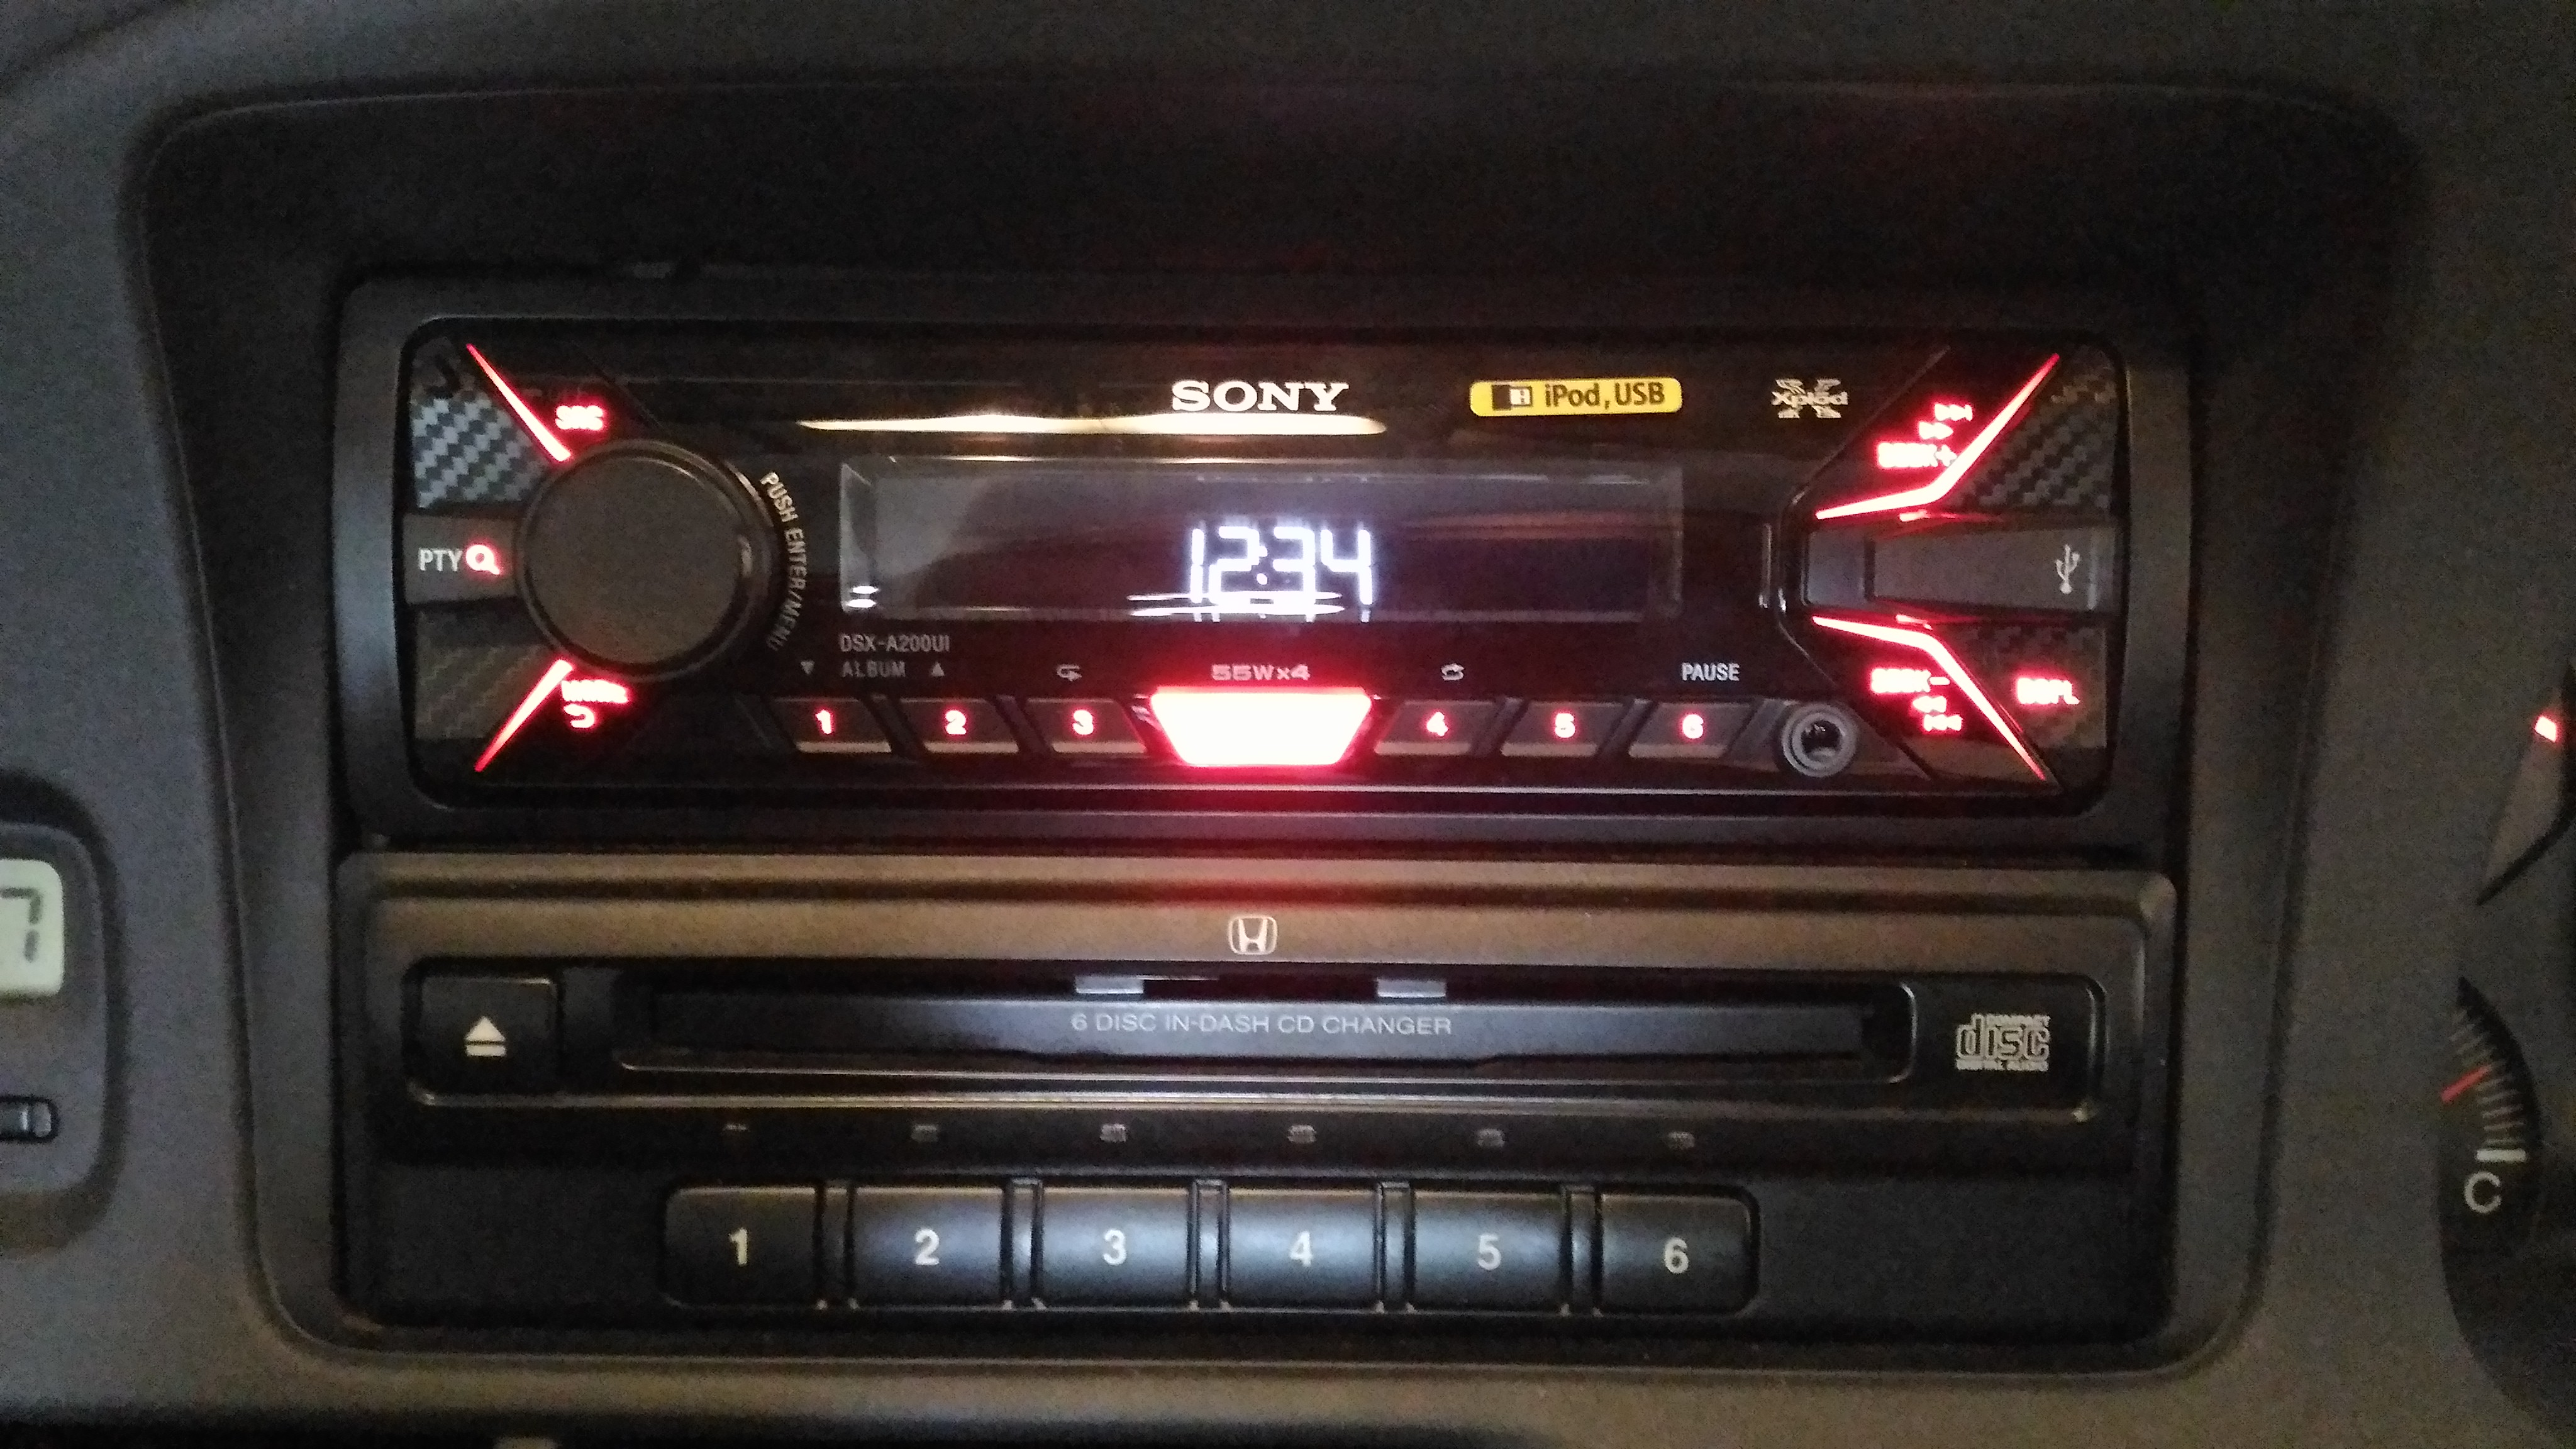 Sony Auto Parts For Honda Accord At Head Unit Installed On 2003 Odyssey